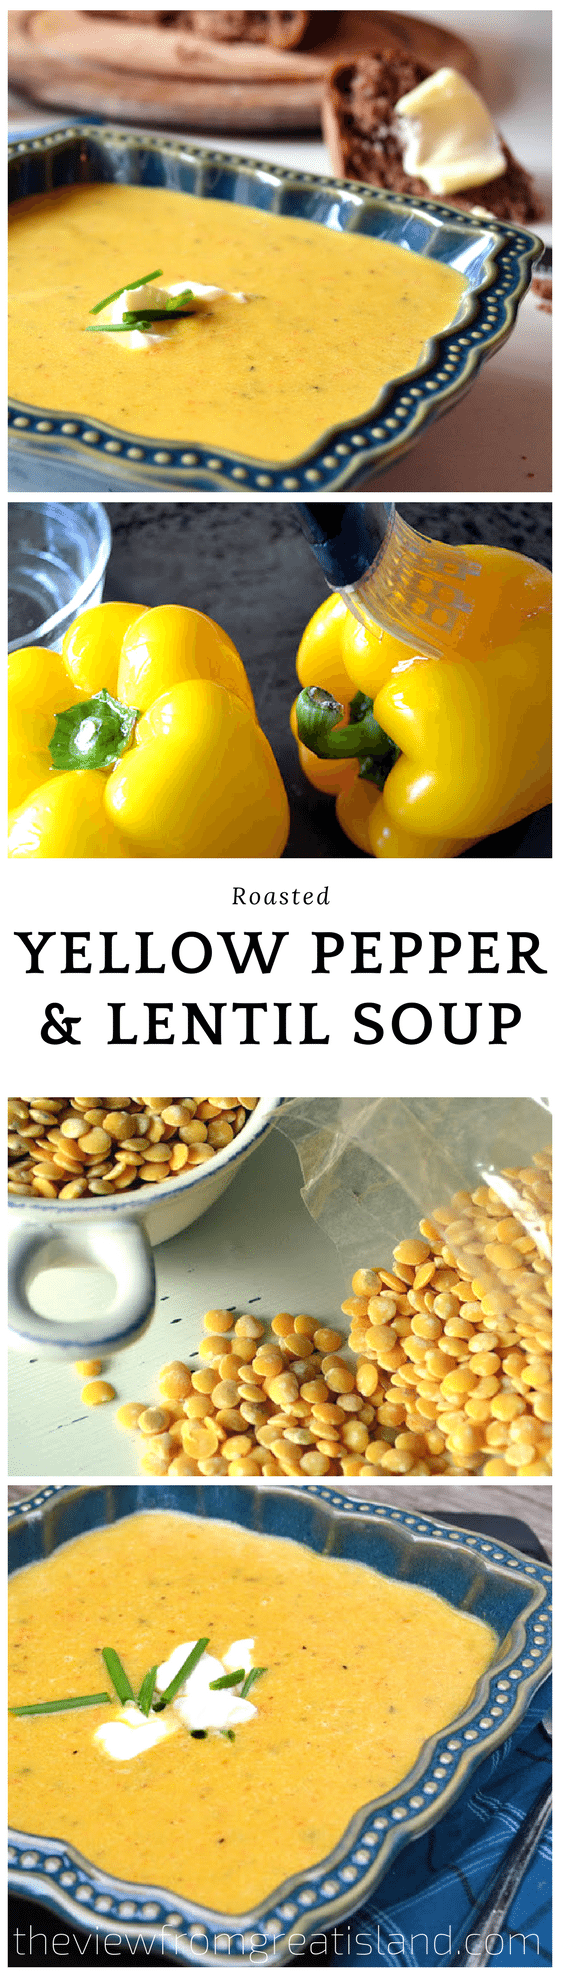 Roasted Yellow Pepper and Lentil Soup ~ this light bright soup made with bell peppers and lentils makes a wonderful starter or light meal, just add a crisp salad and a warm loaf of bread! #yellowpeppers #soup #lentils #roastedvegetables #healthysoup #roastedpeppers #lentilsoup #comfortfood #glutenfree #vegetarian #dinner #easydinner #lunch #healthylunch